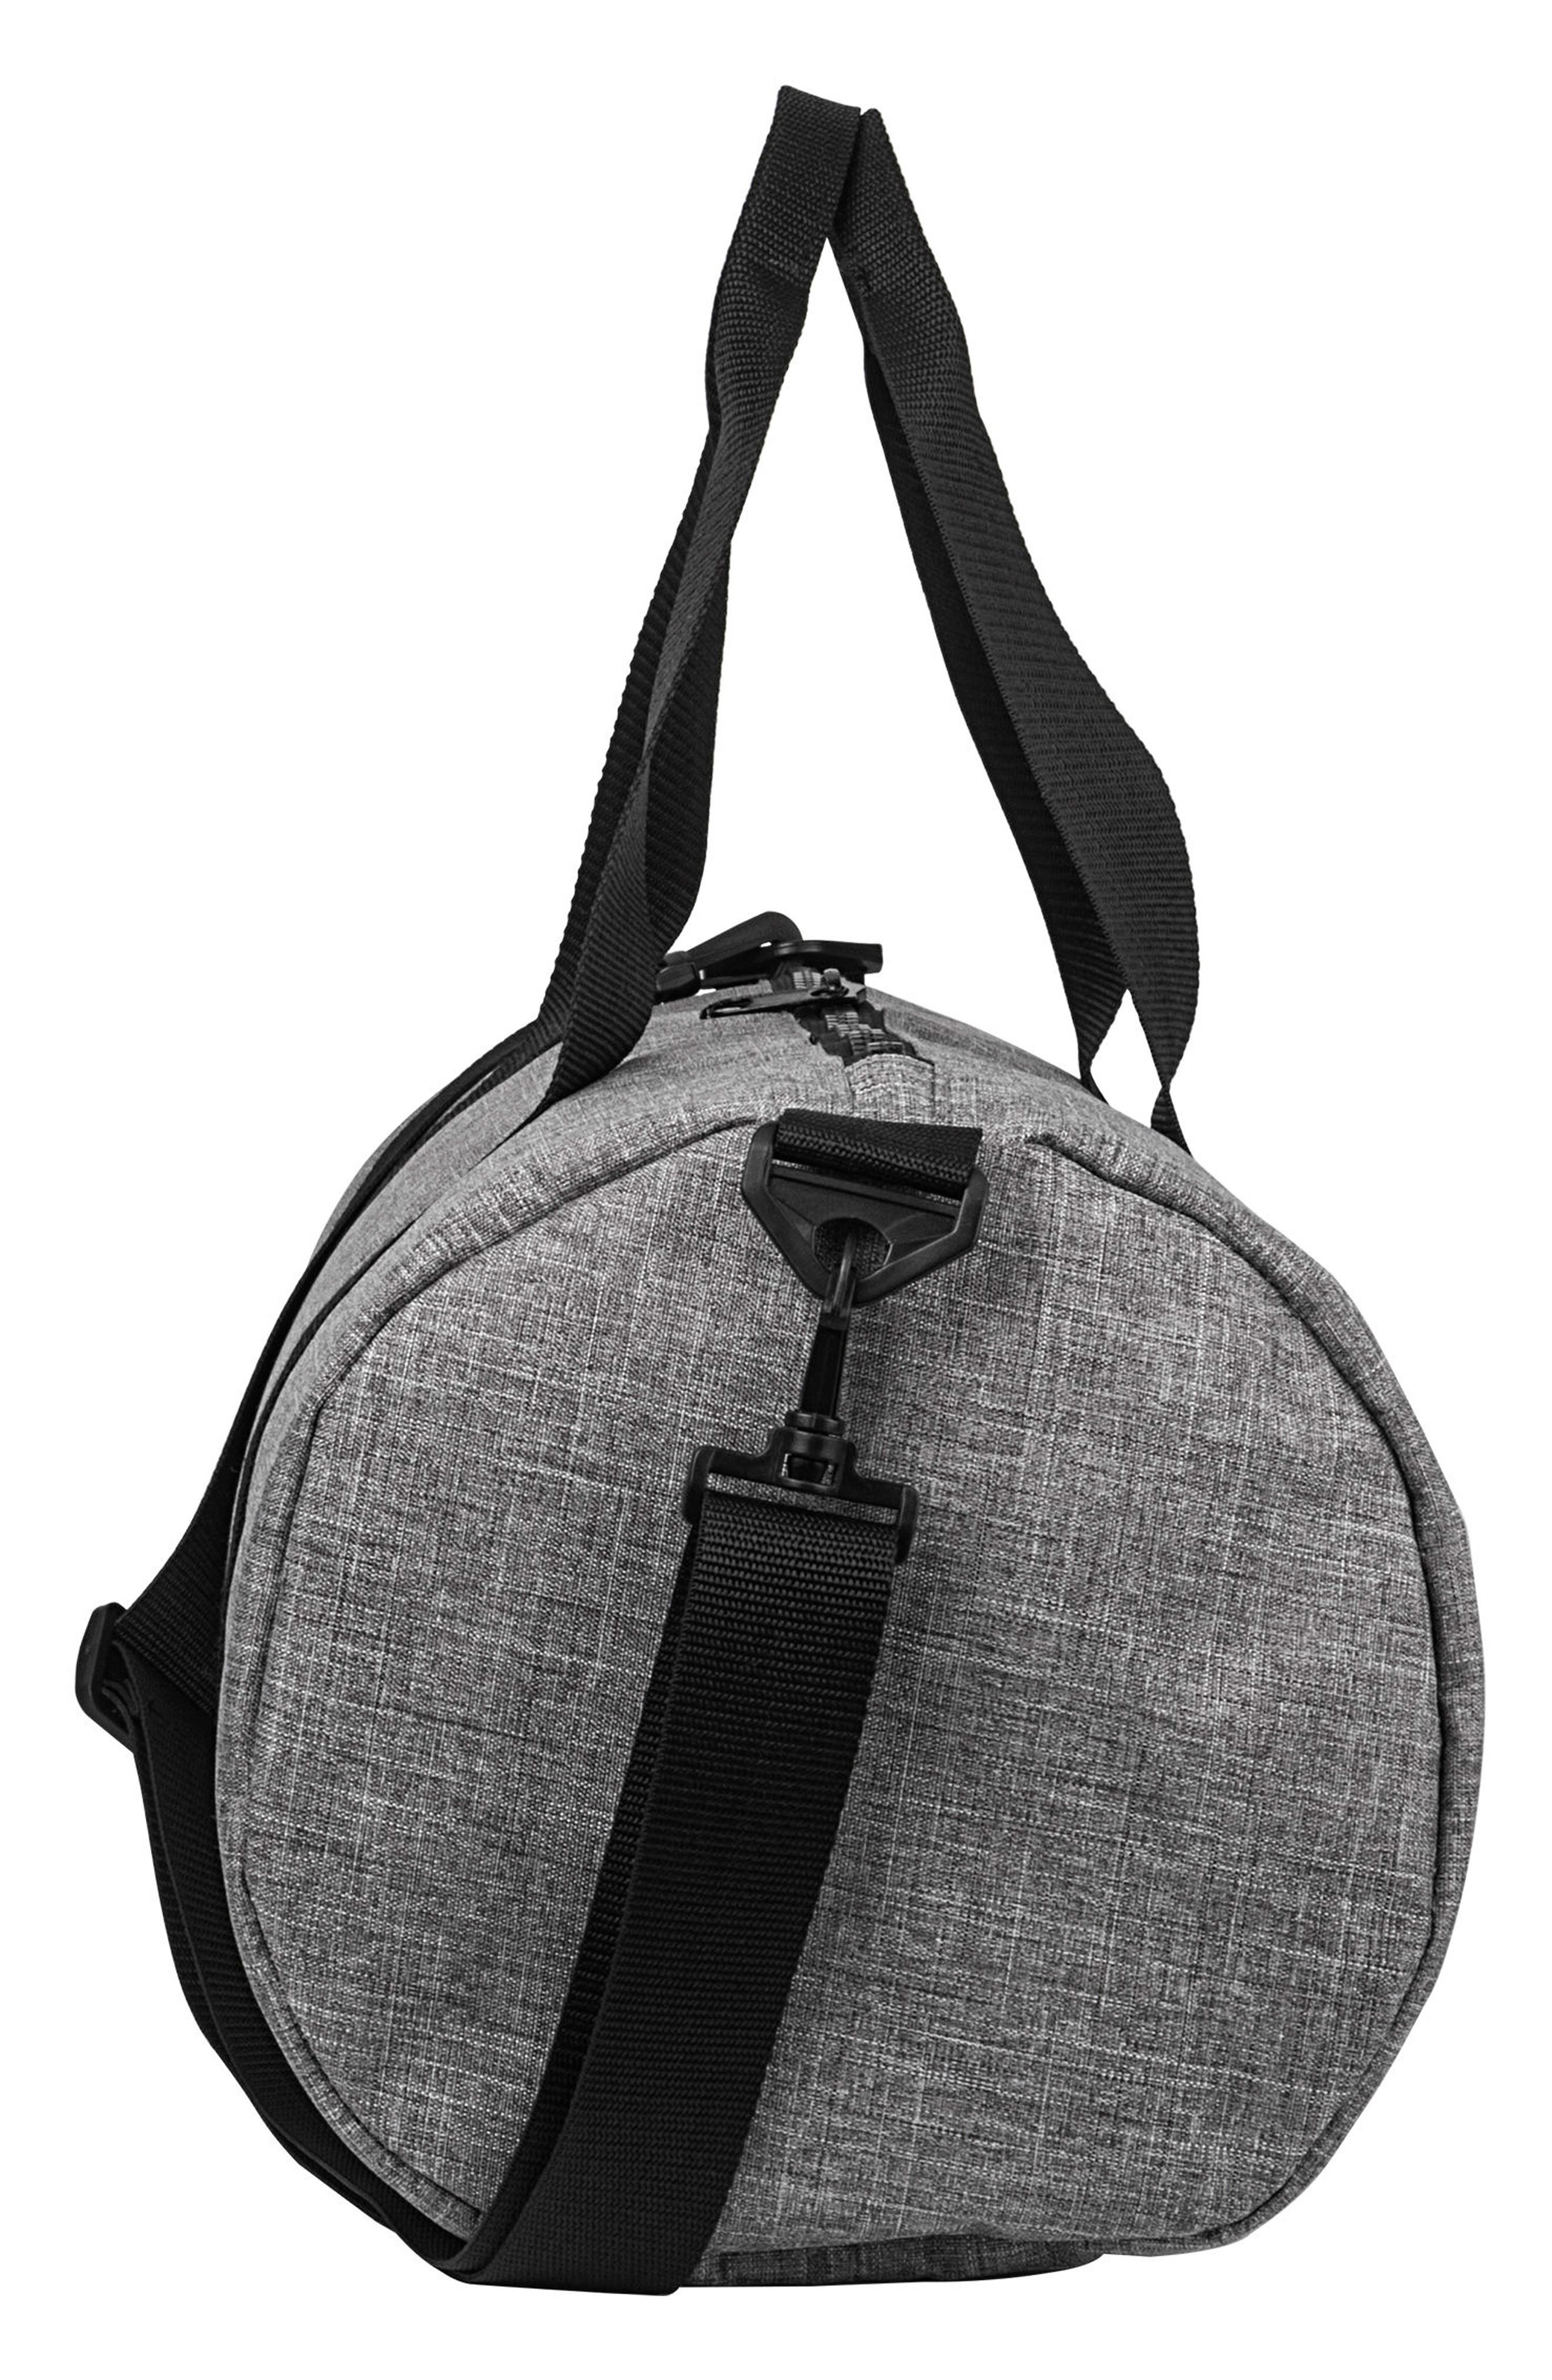 Monogram Duffel Bag,                             Alternate thumbnail 3, color,                             GREY